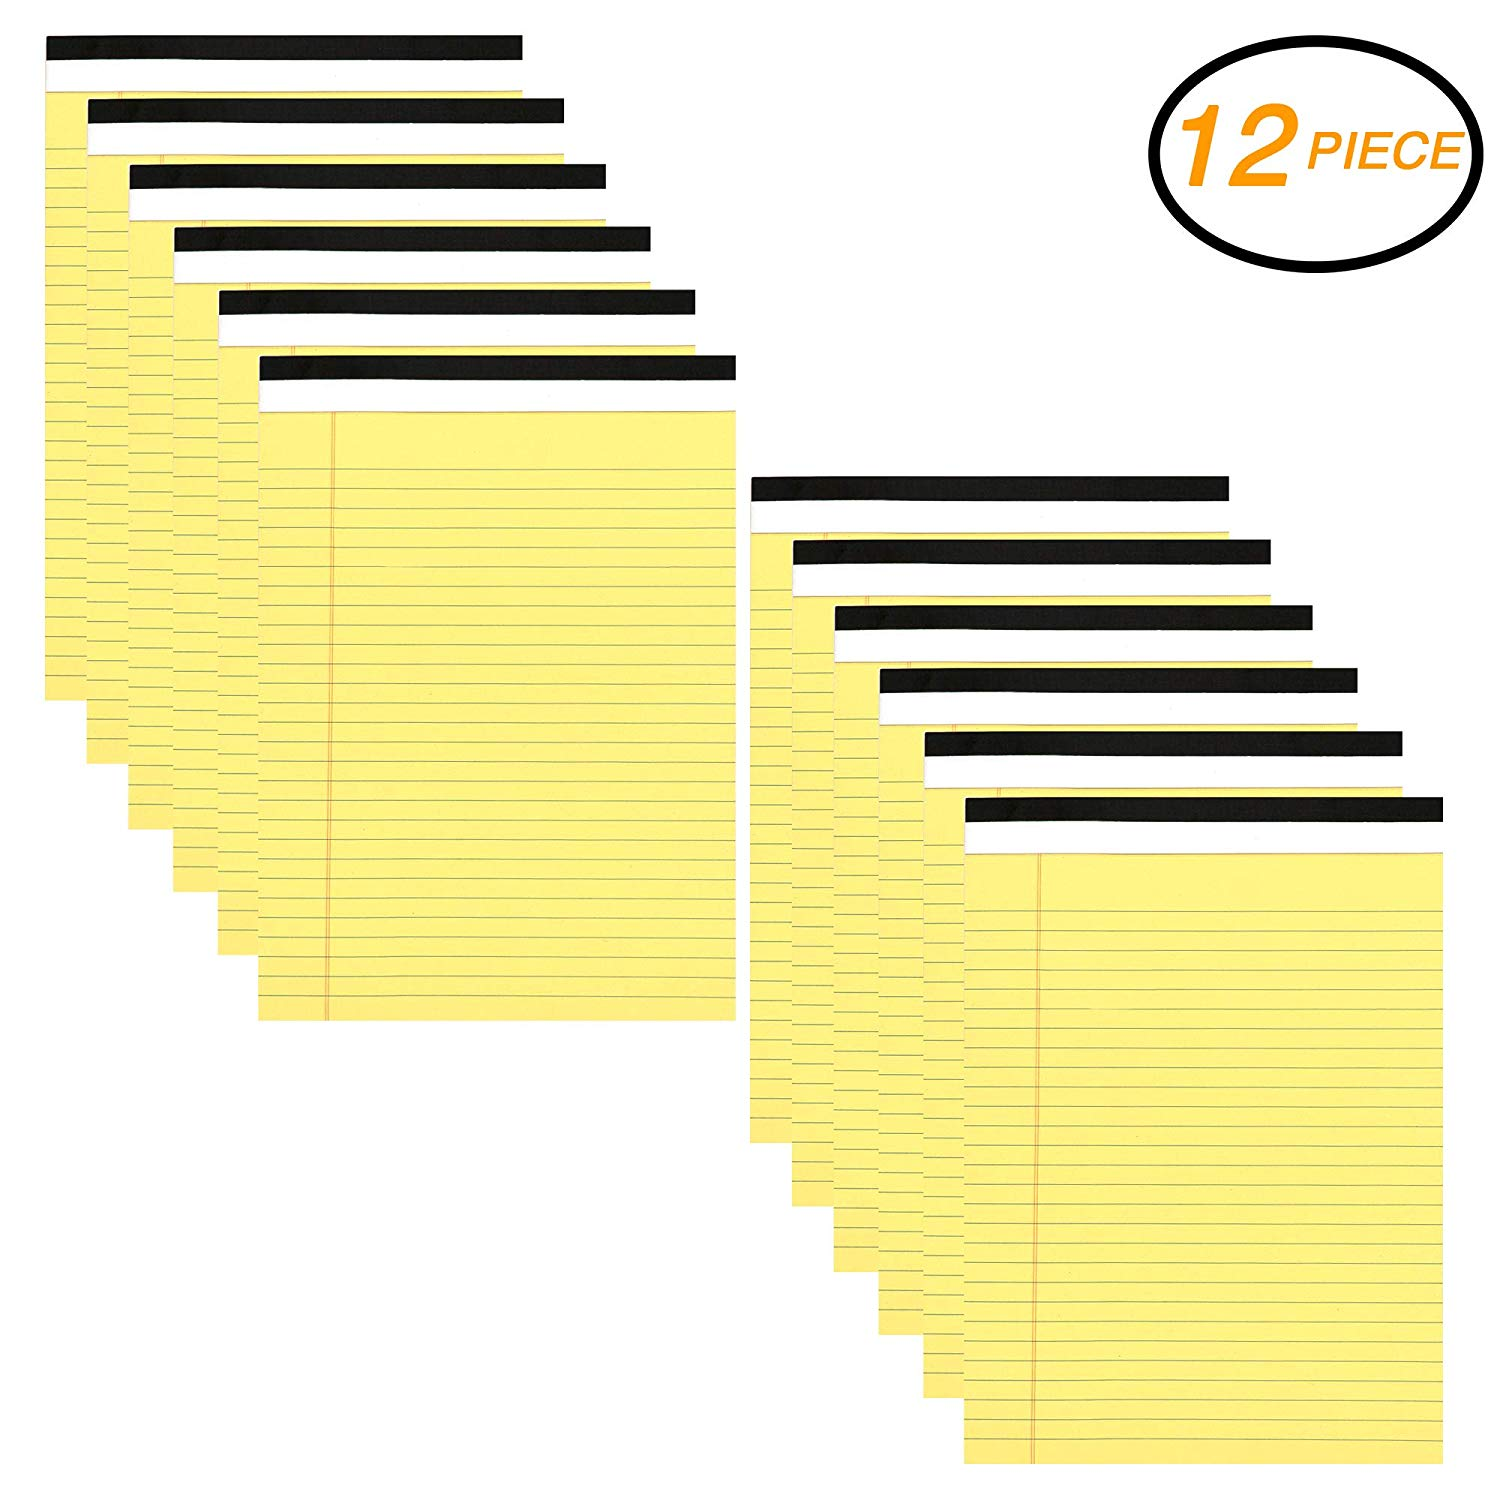 "EMRAW Canary Yellow Micro Perforated Edge Legal Ruled Universal 50 Sheets Letter Size Writing Pad - 50 Ct. 8.5"" X 11.75"" (Pack of 12)"